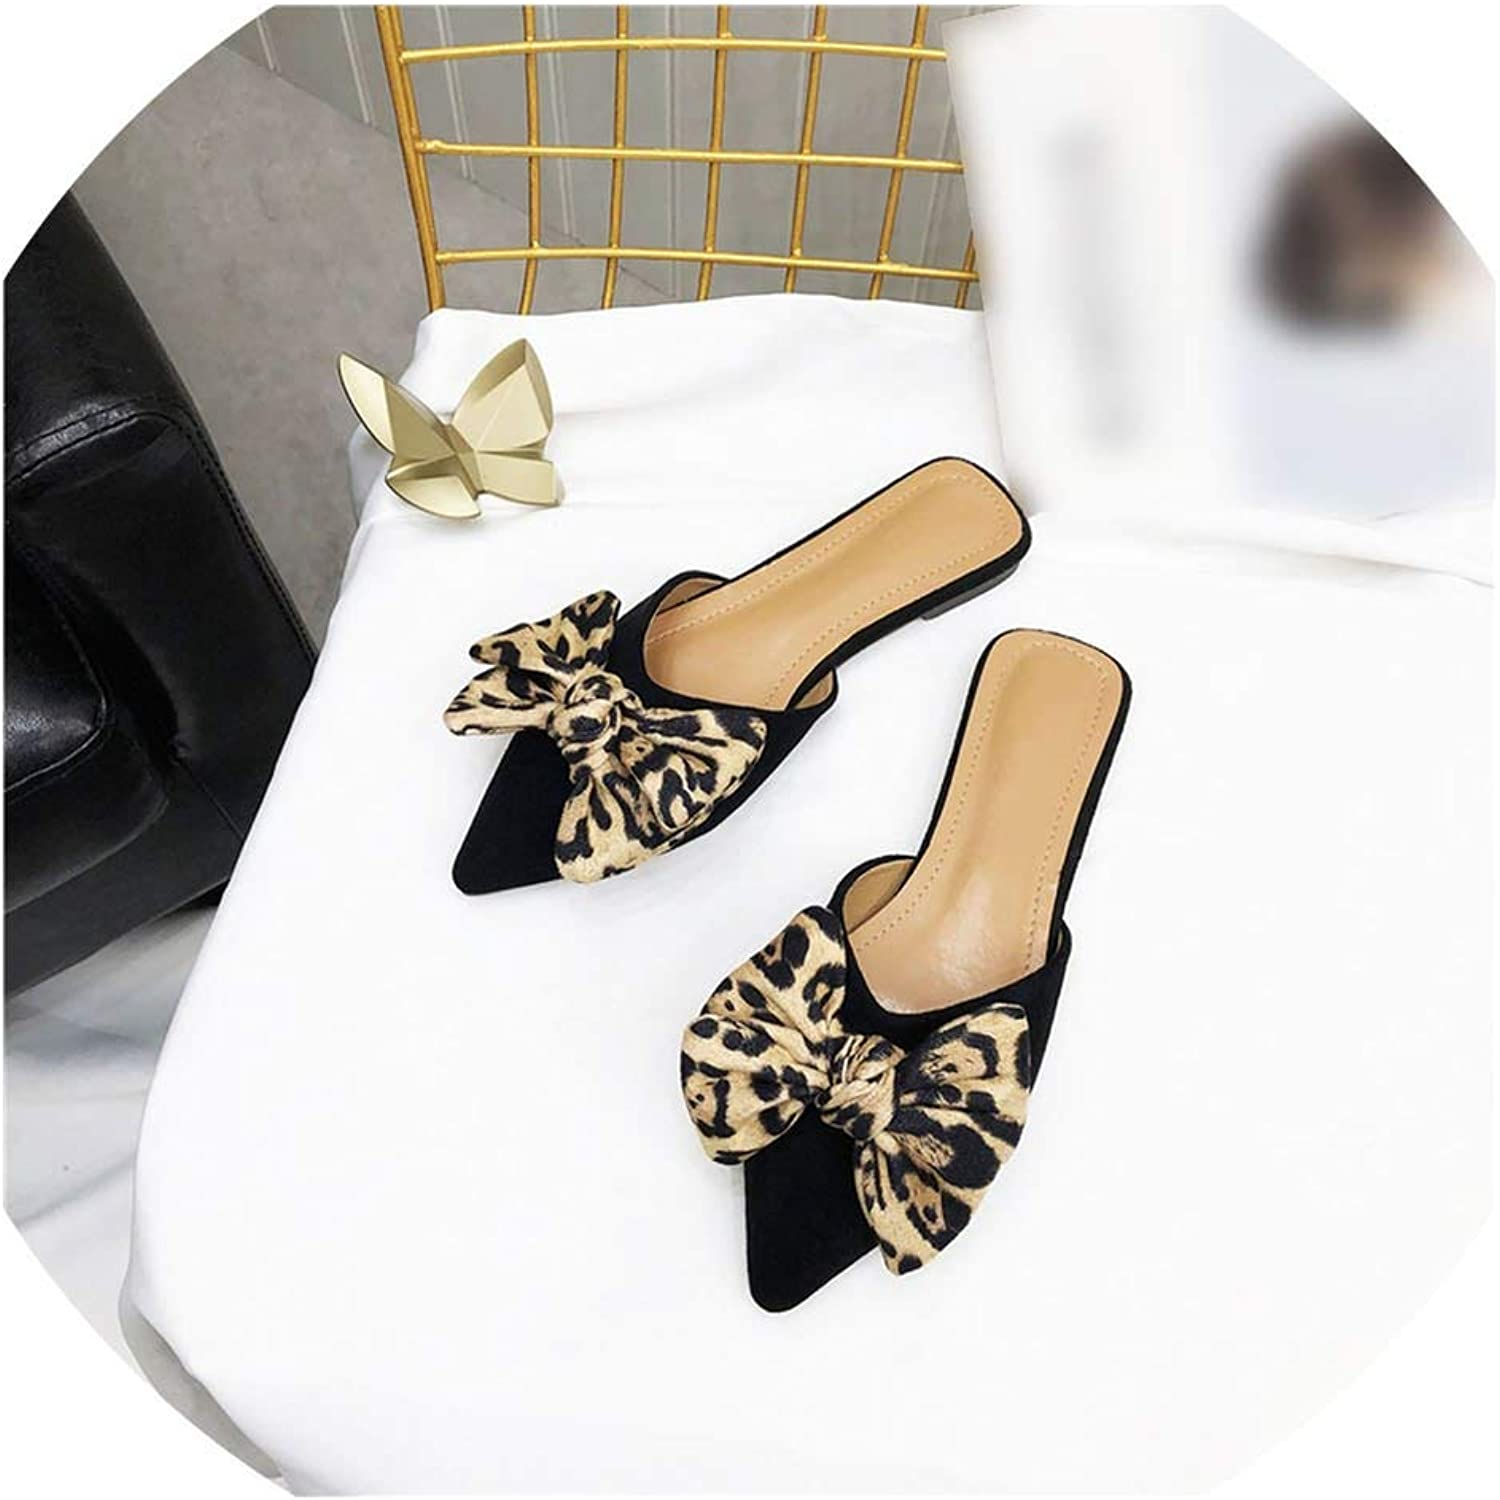 Flat Slippers Ladies Dress Woman shoes Pointed Toe Slides Slippers Women